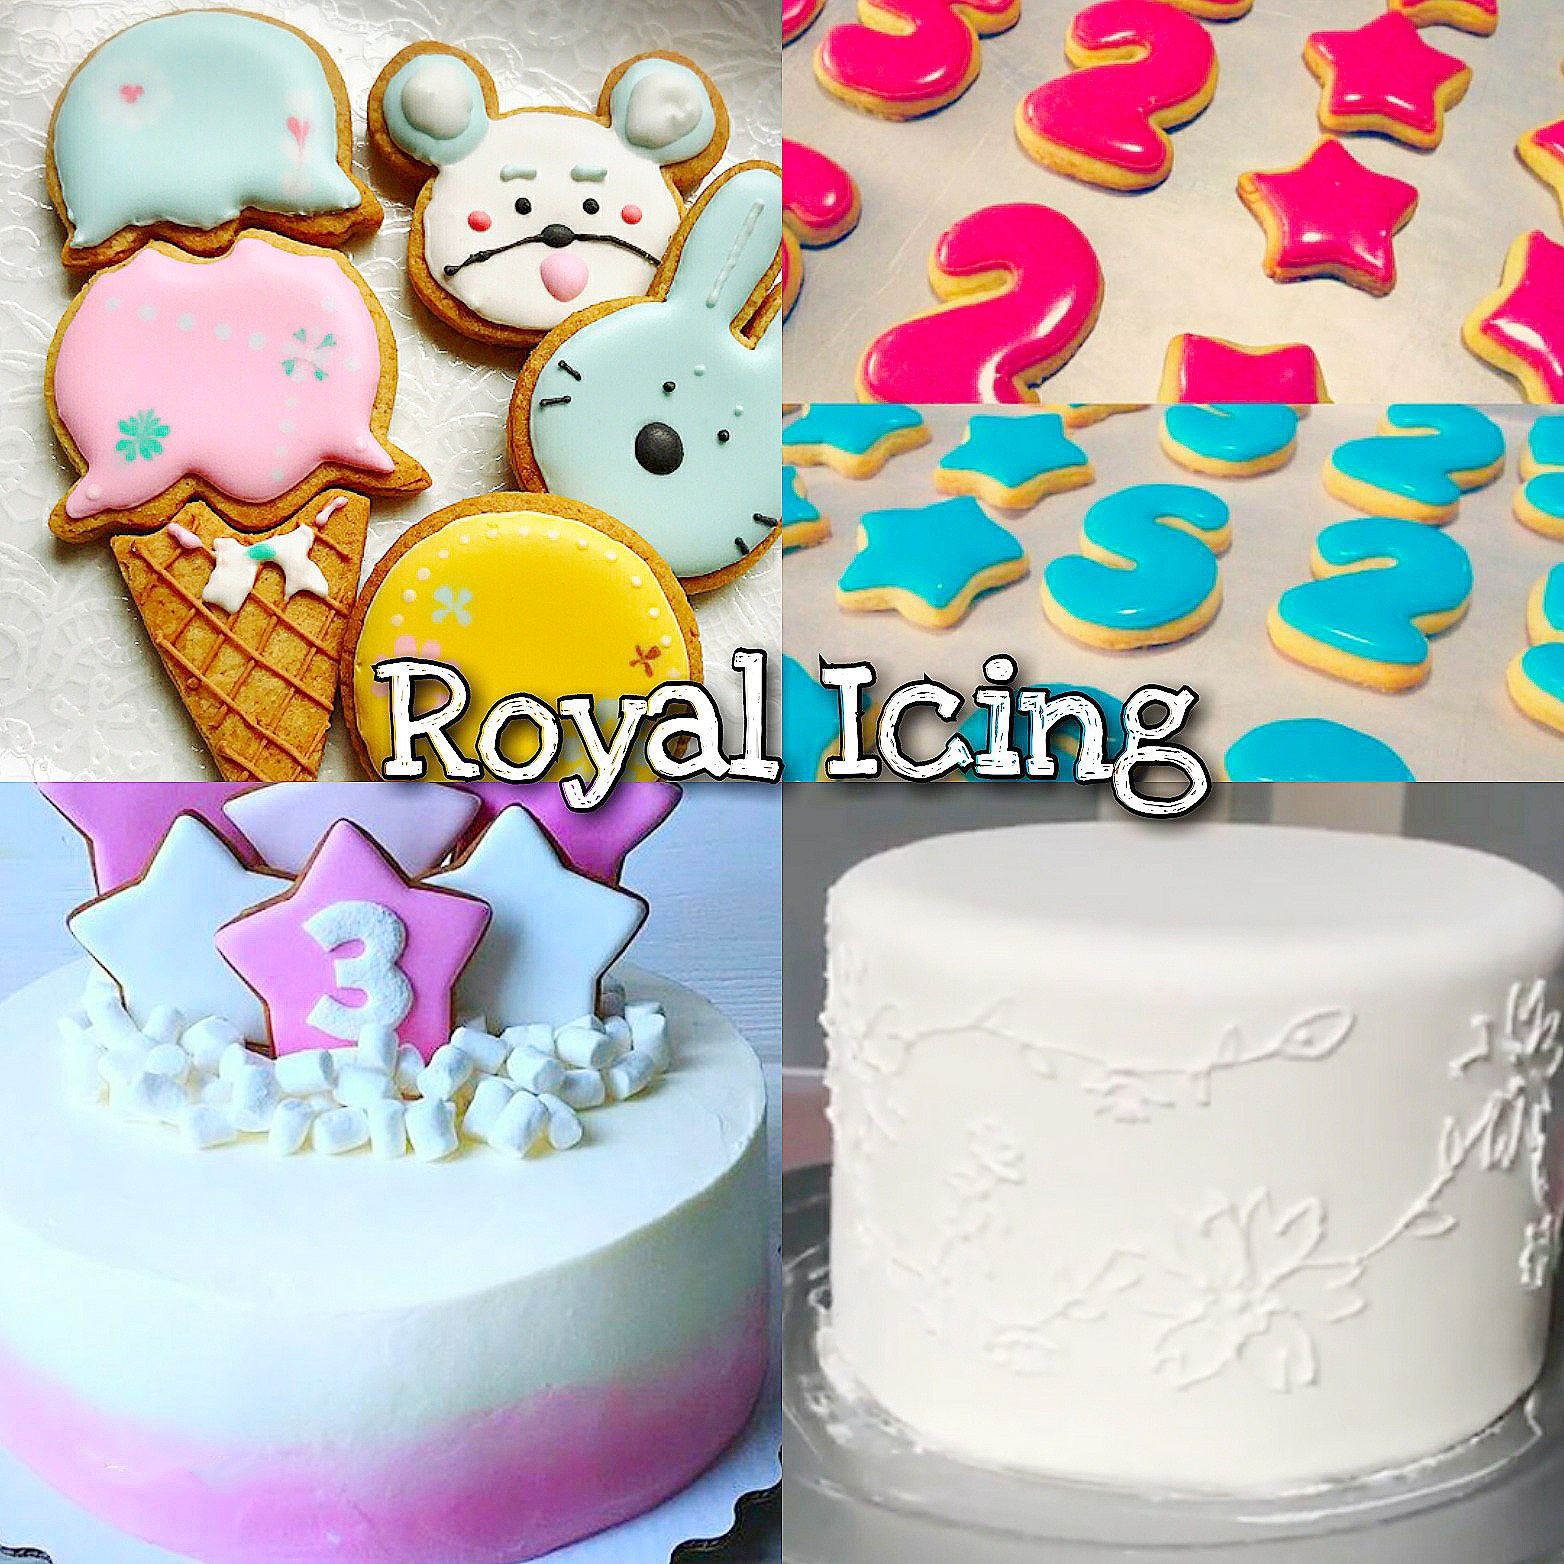 8 Basic Icing Recipes Beginners Guide